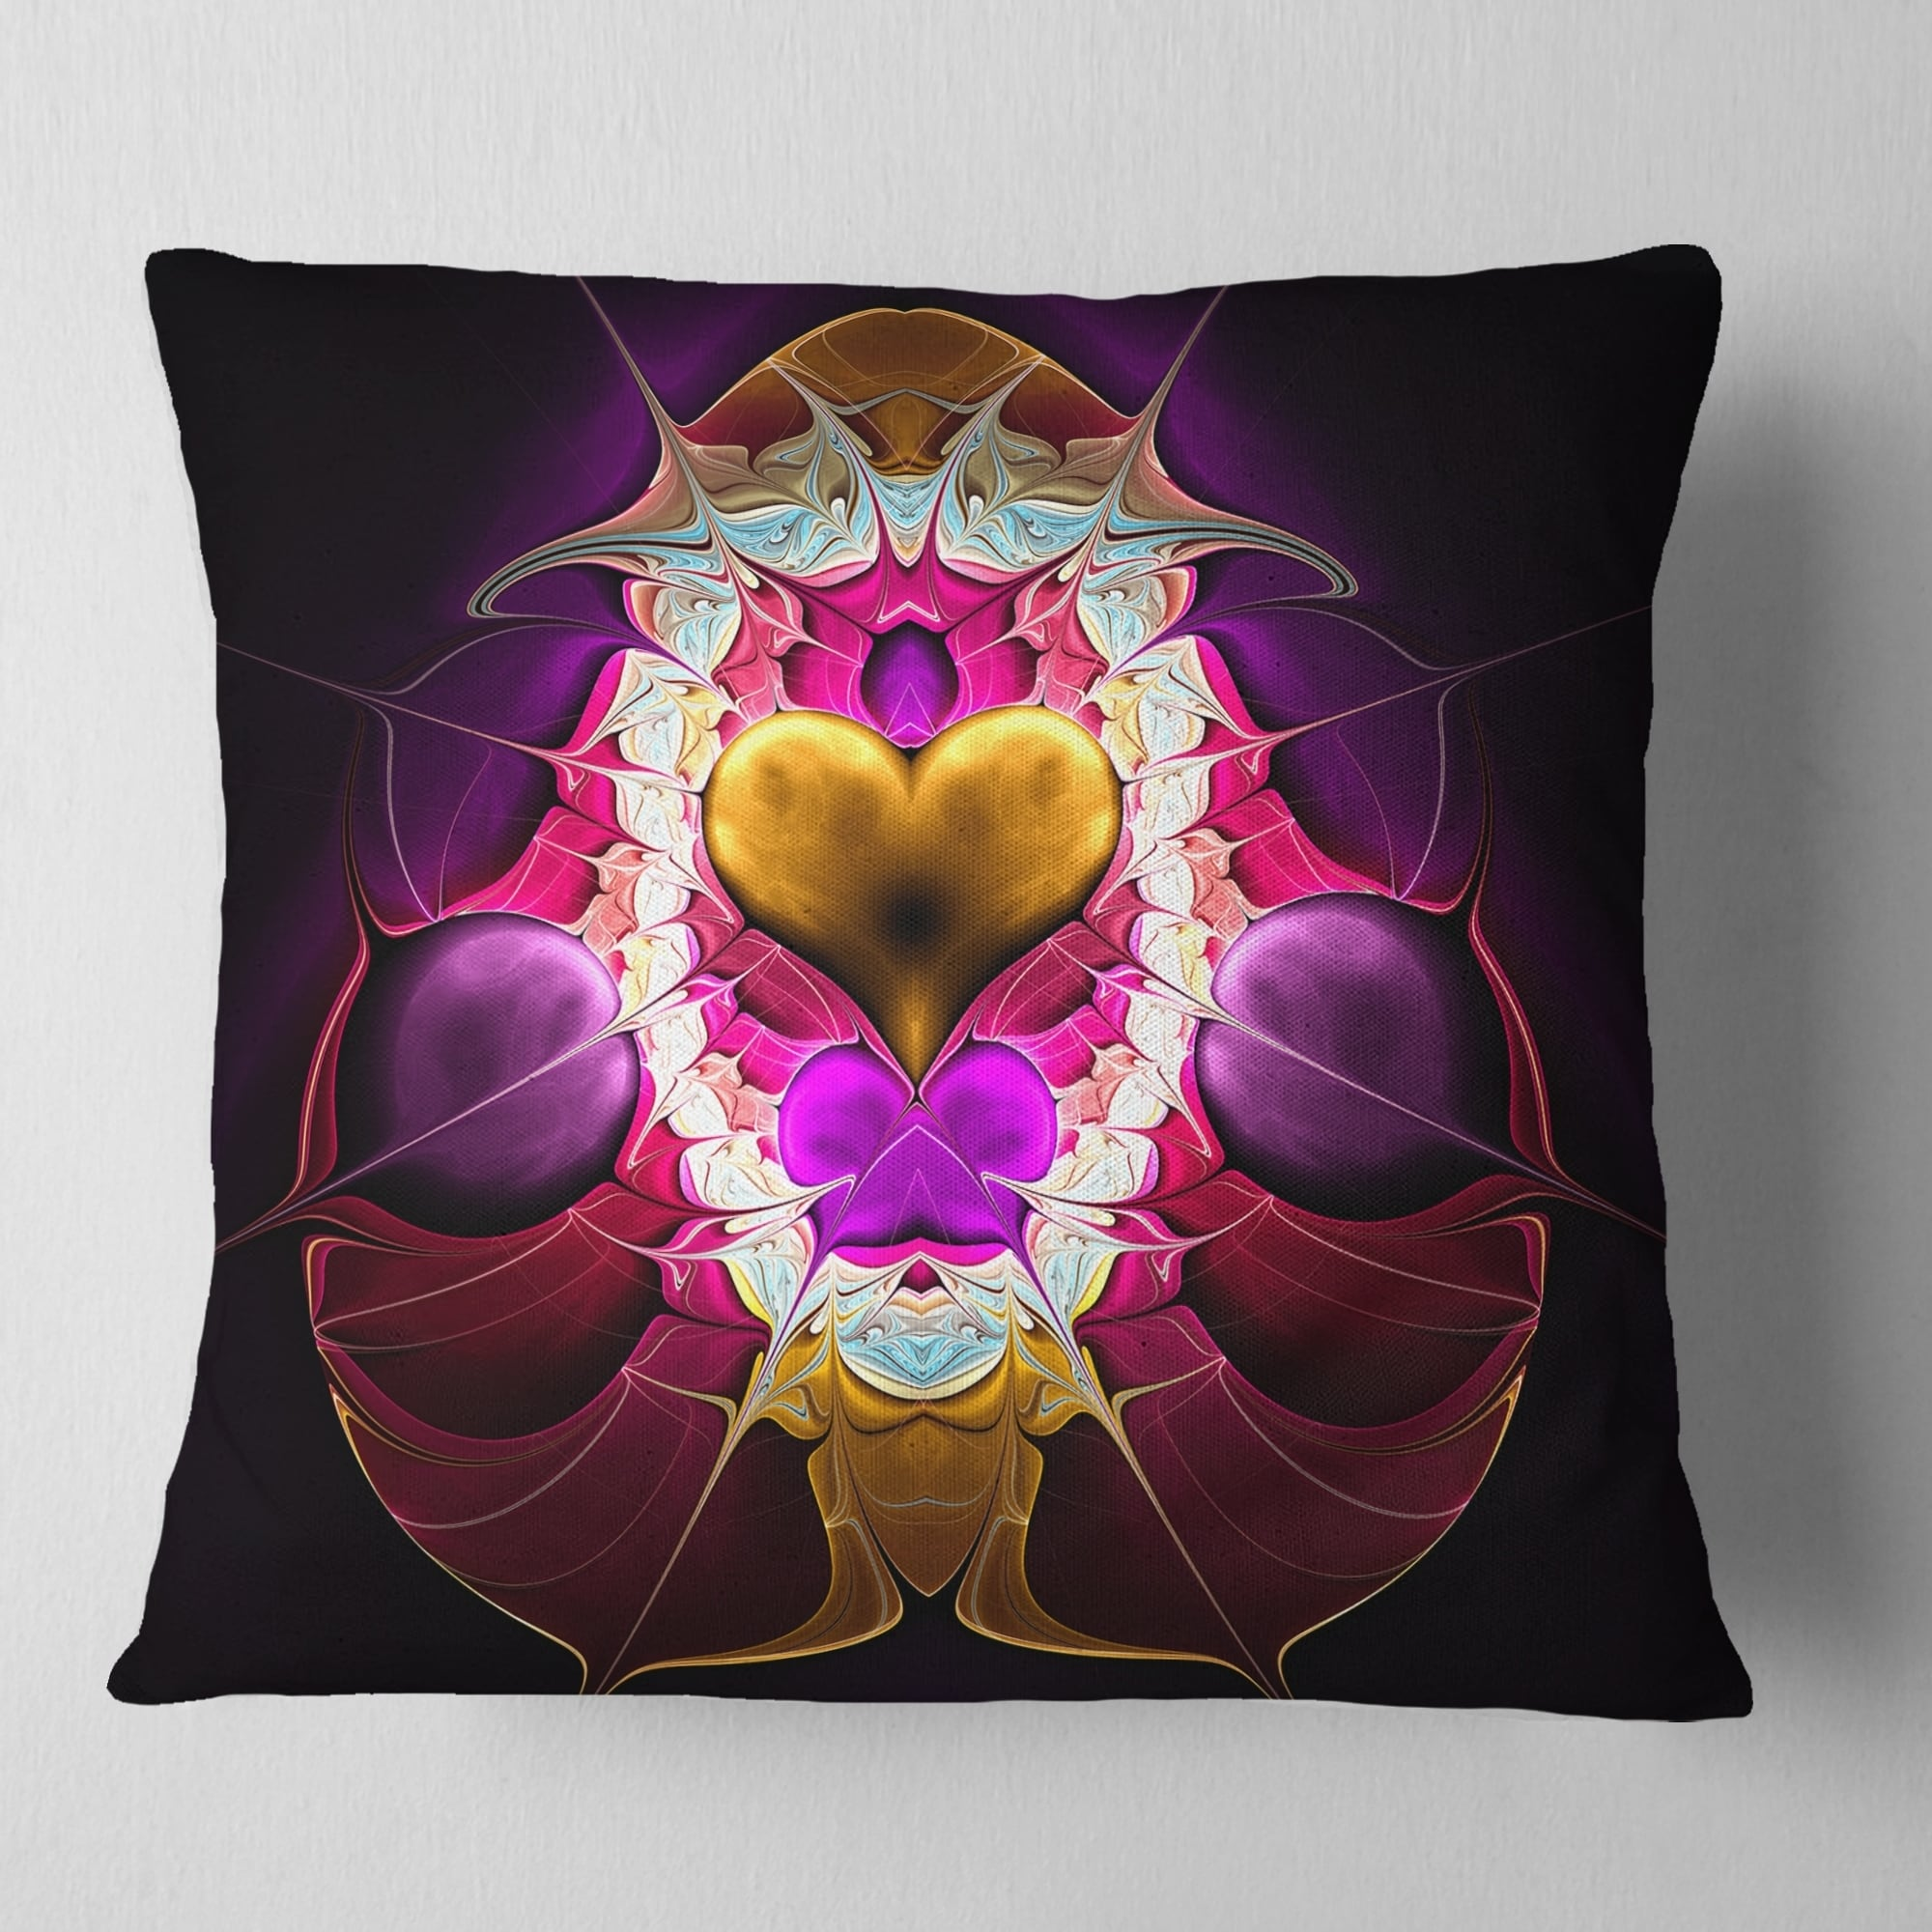 Sofa Throw Pillow 18 x 18 Designart CU12071-18-18 Large Pink Symmetrical Fractal Heart Abstract Cushion Cover for Living Room